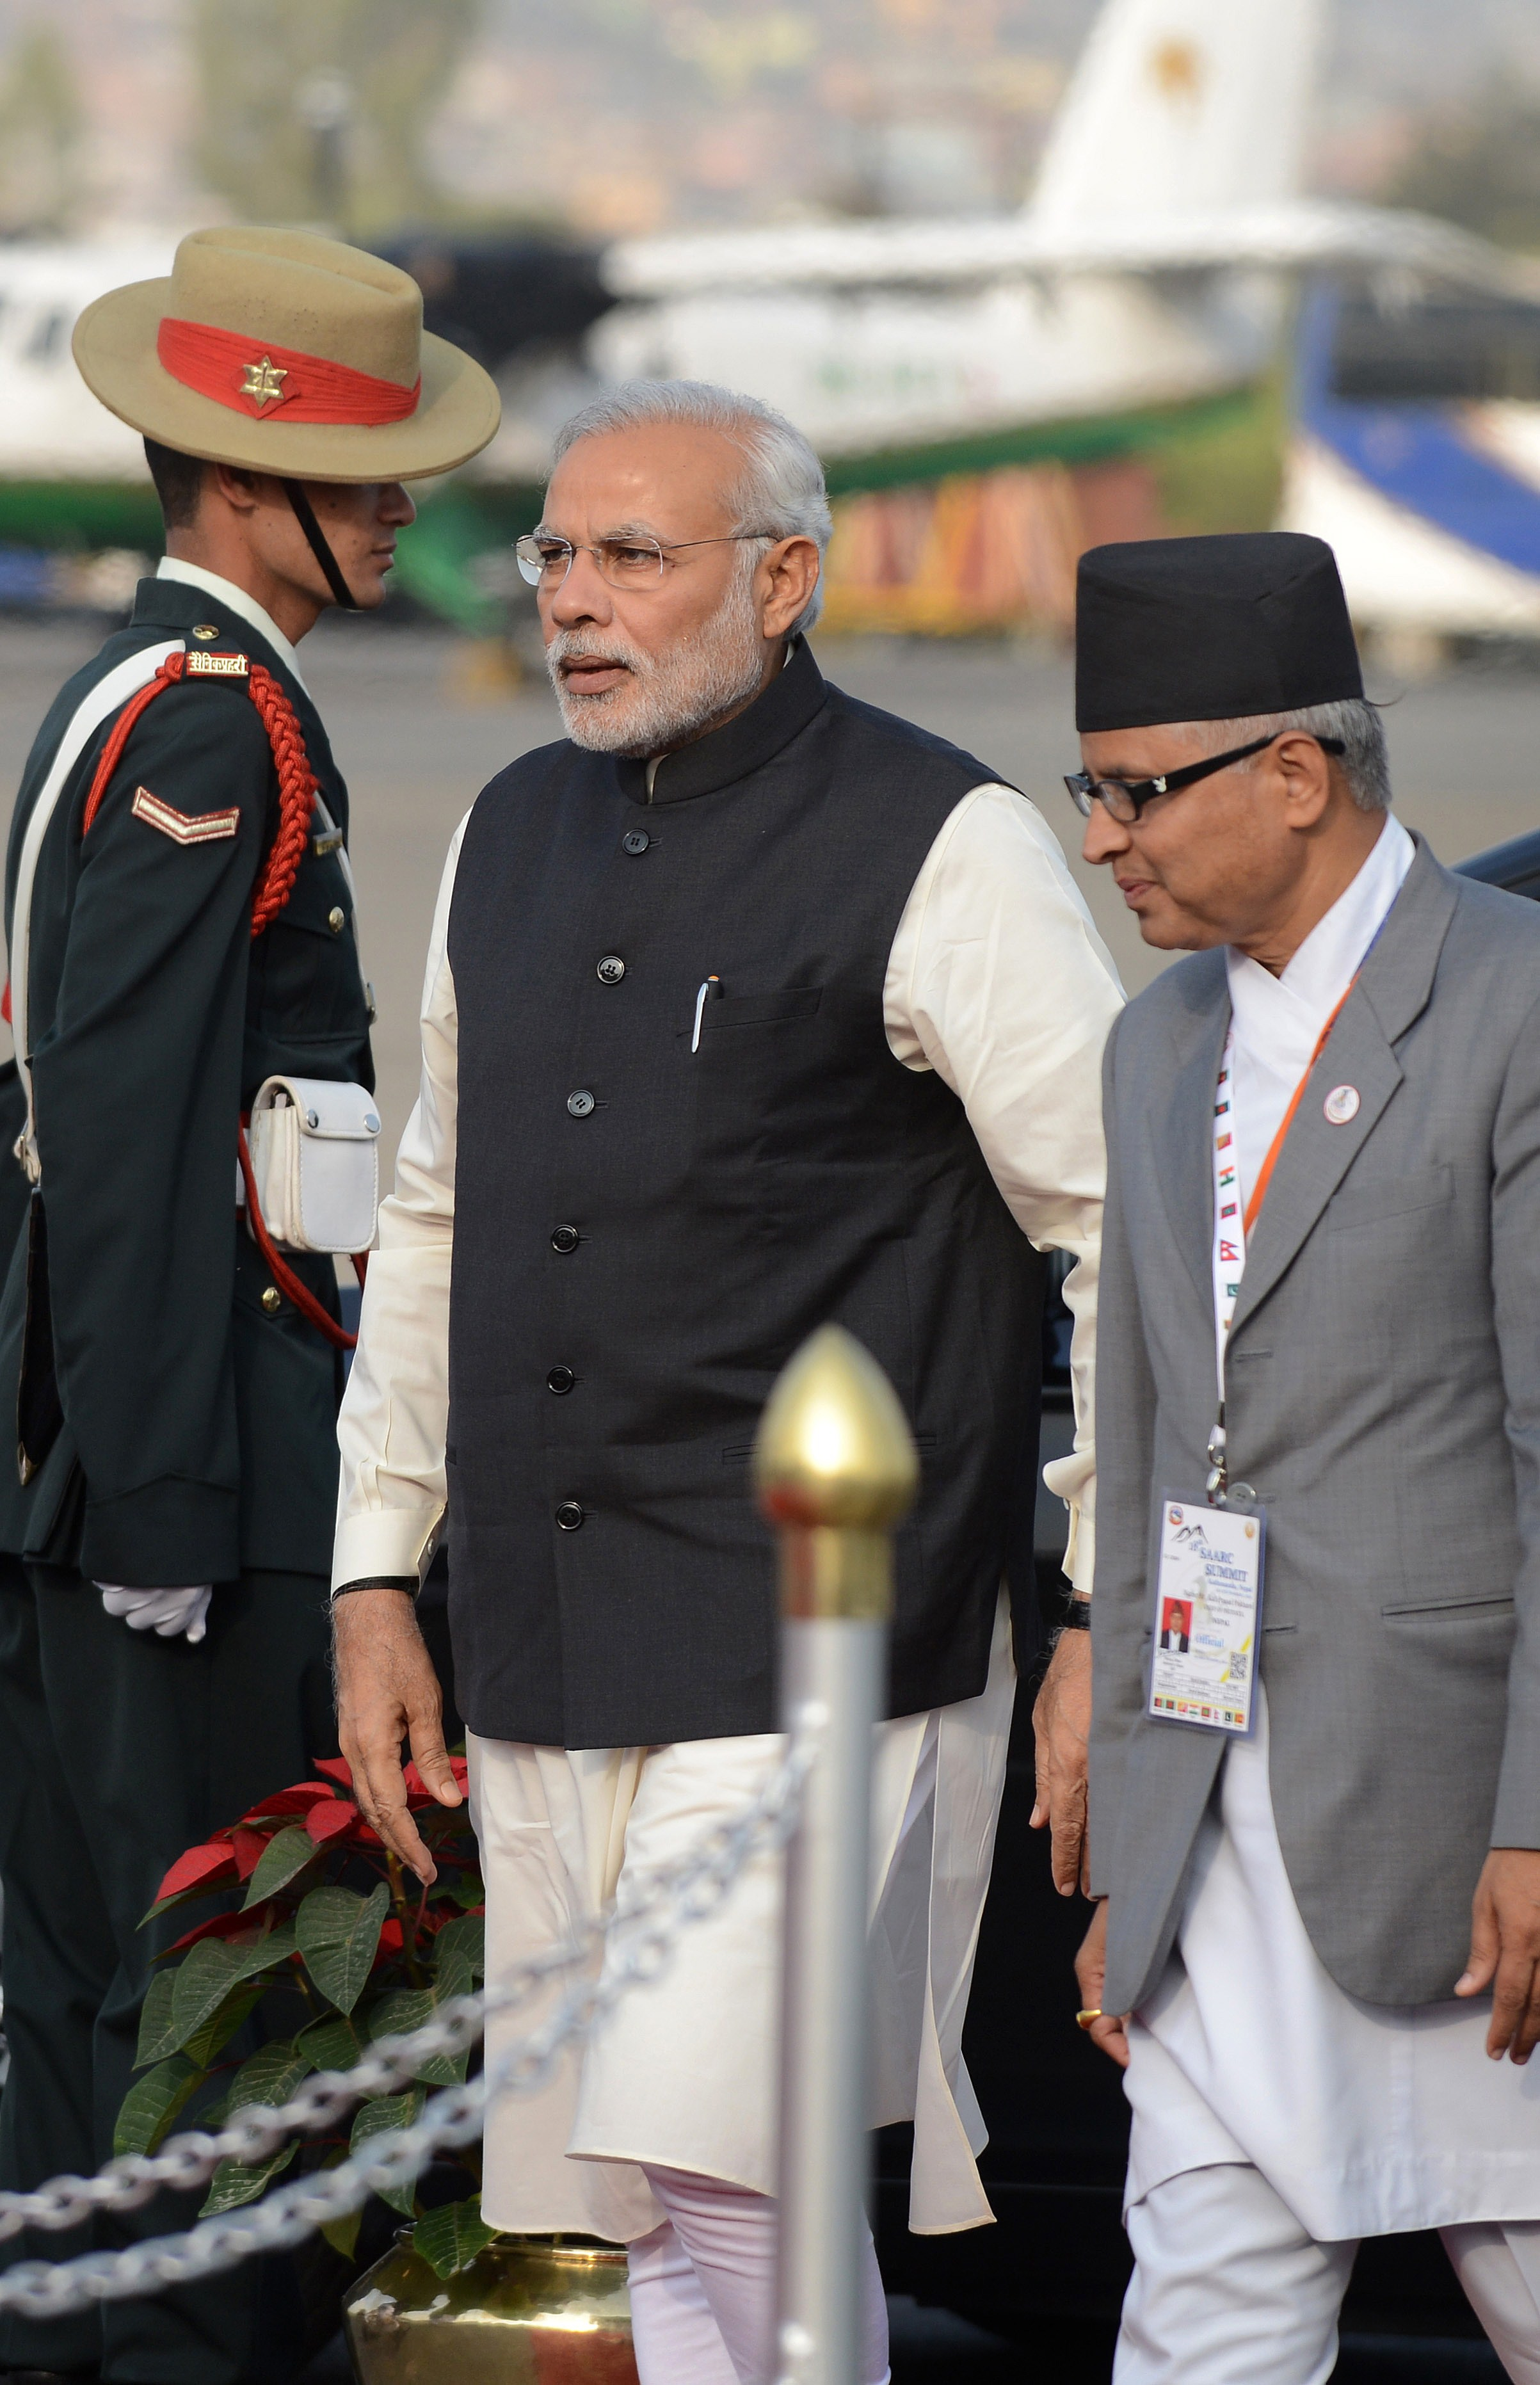 Indian Prime Minister Narendra Modi (L) walks on his arrival at Tribhuvan International Airport to attend the 18th South Asian Association for Regional Cooperation (SAARC) summit in Kathmandu on November 25, 2014.